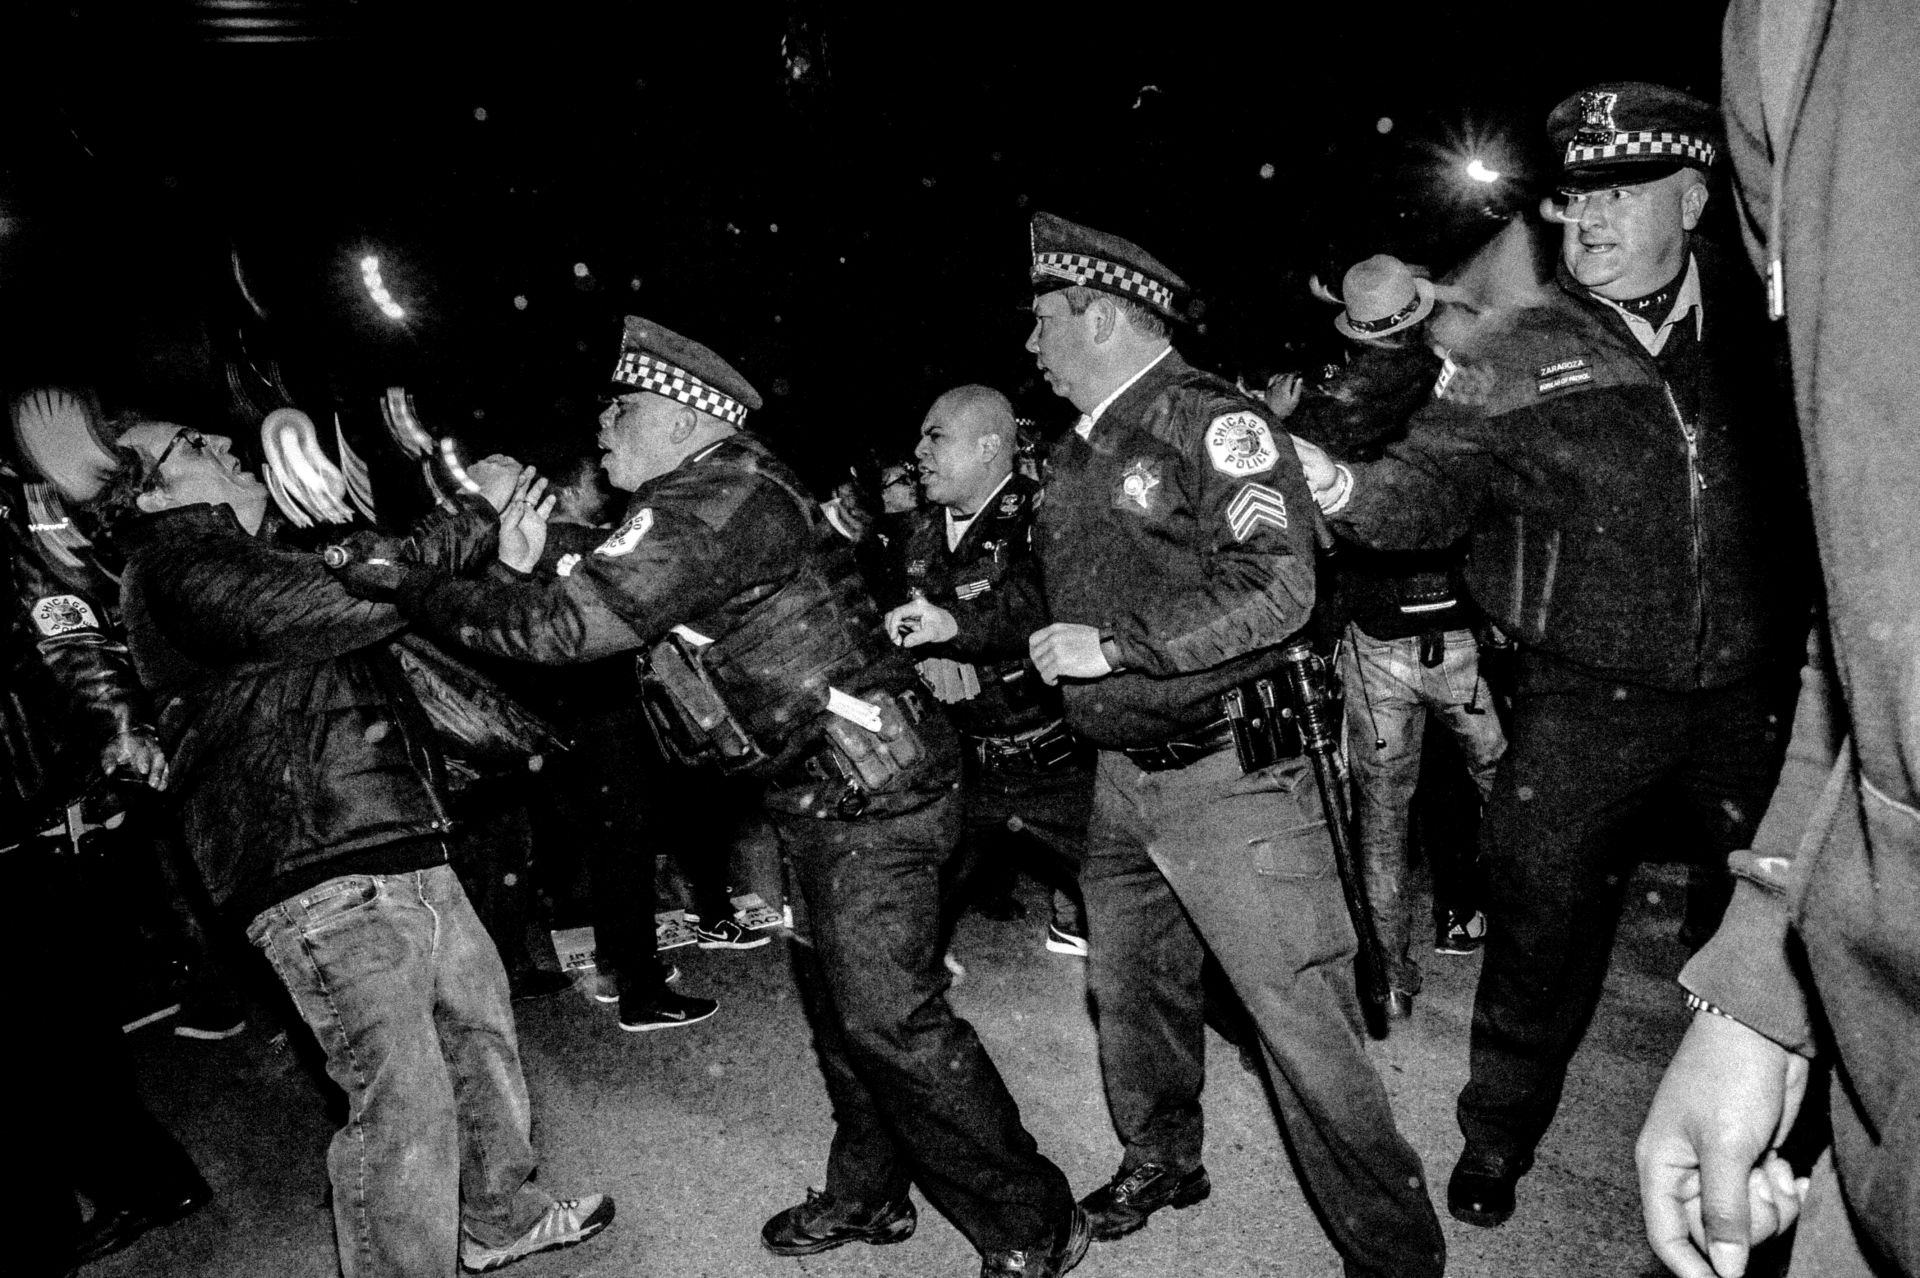 A Bernie Sanders supporter clashes with police in Chicago during an anti-Trump riot.